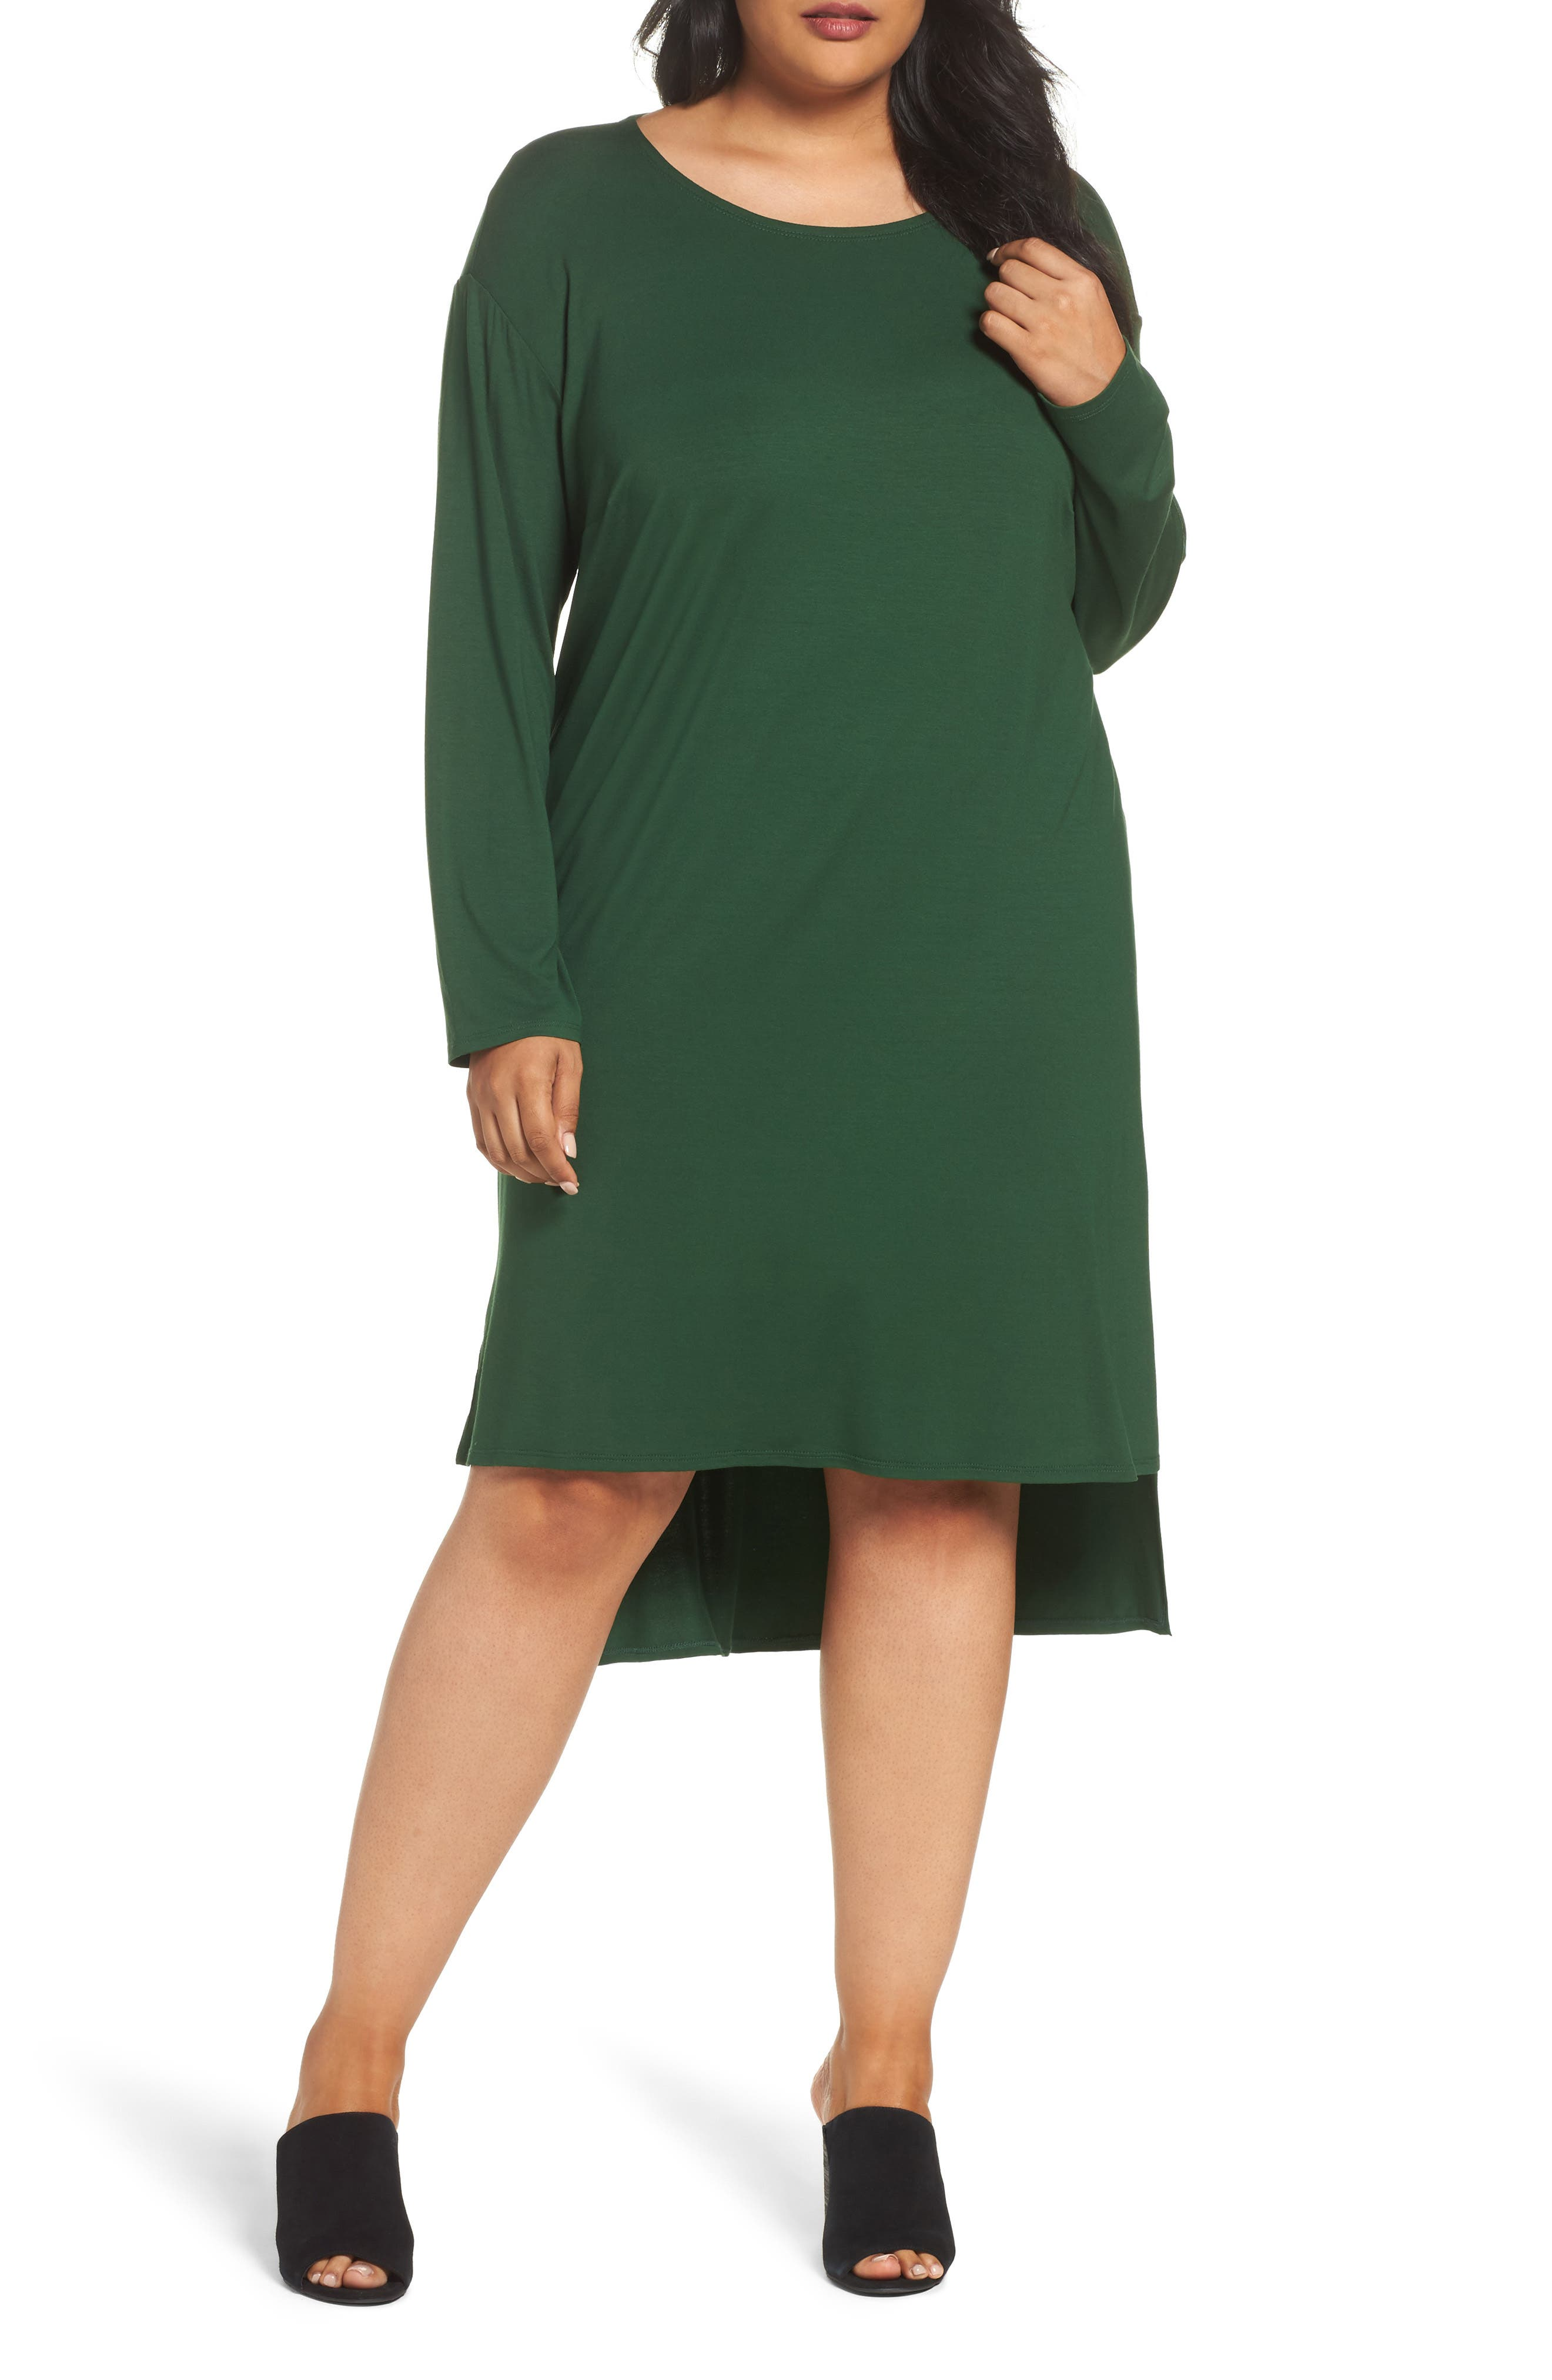 Alternate Image 1 Selected - Eileen Fisher High/Low Jersey Shift Dress (Plus Size)